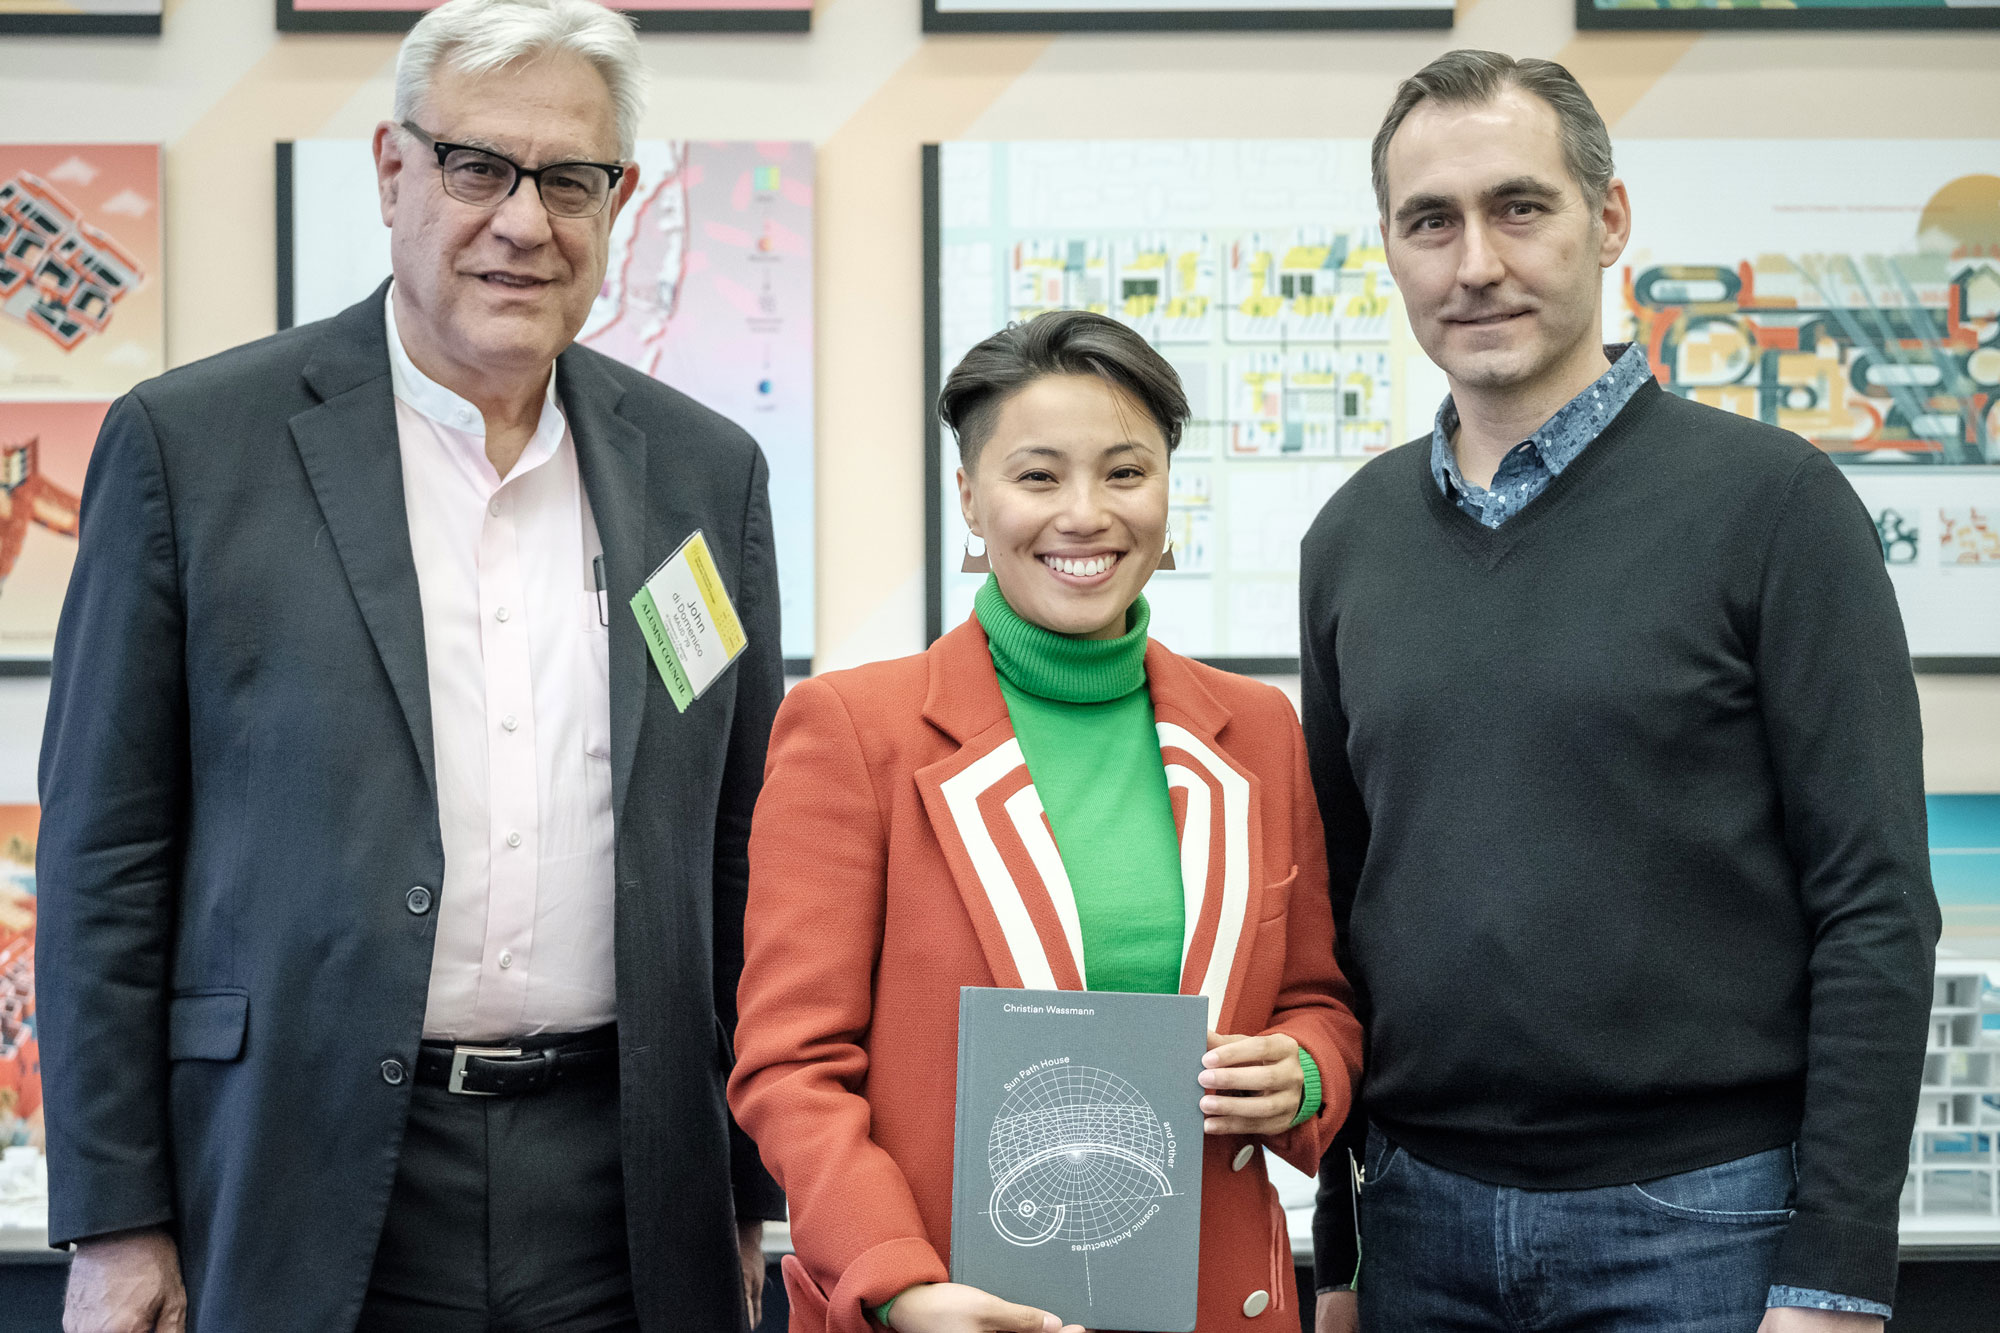 Natalie Wang MDes '19 with her book selection Sun Path House and Other Cosmic Architectures by Christian Wassmann and Hendrik Schwantes. She is photographed with Alumni Council members John di Domenico MAUD '79 (left) and Chris Bourassa AMDP '09 (right).